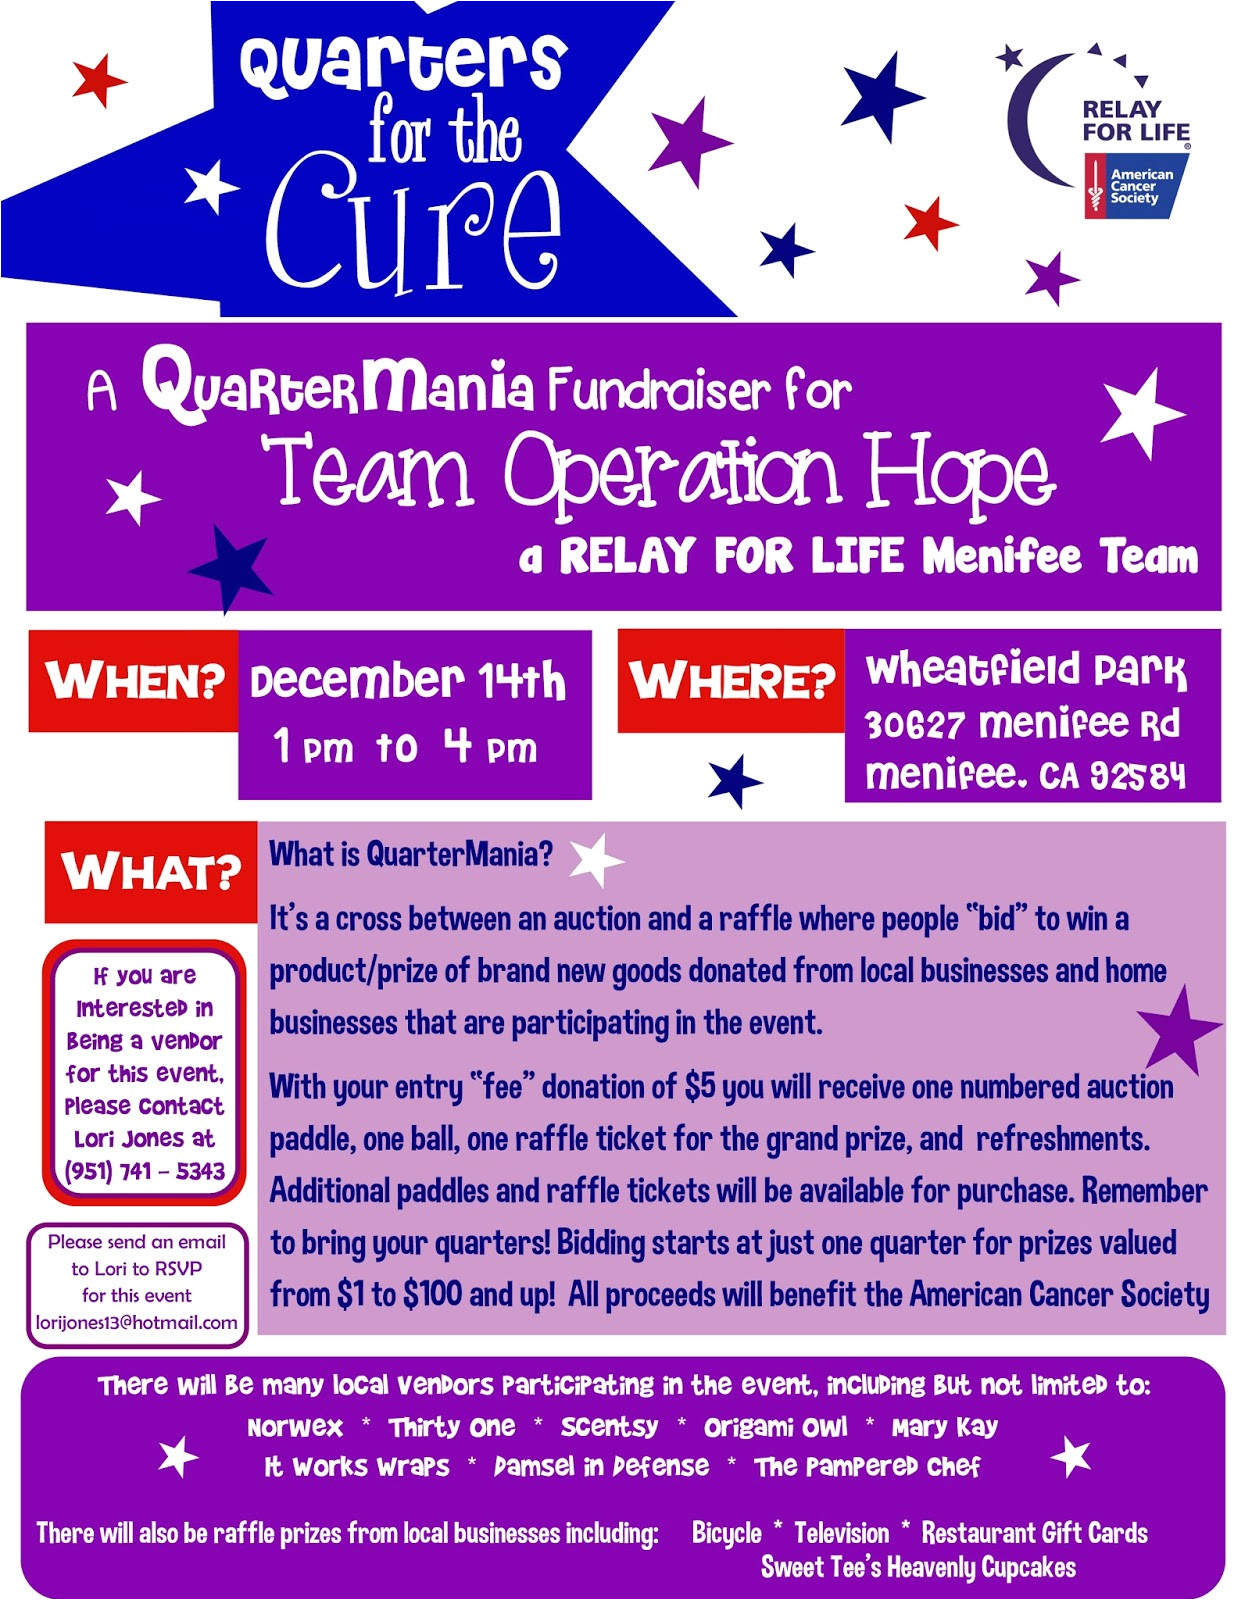 menifee relay for life fundraiser dec 14